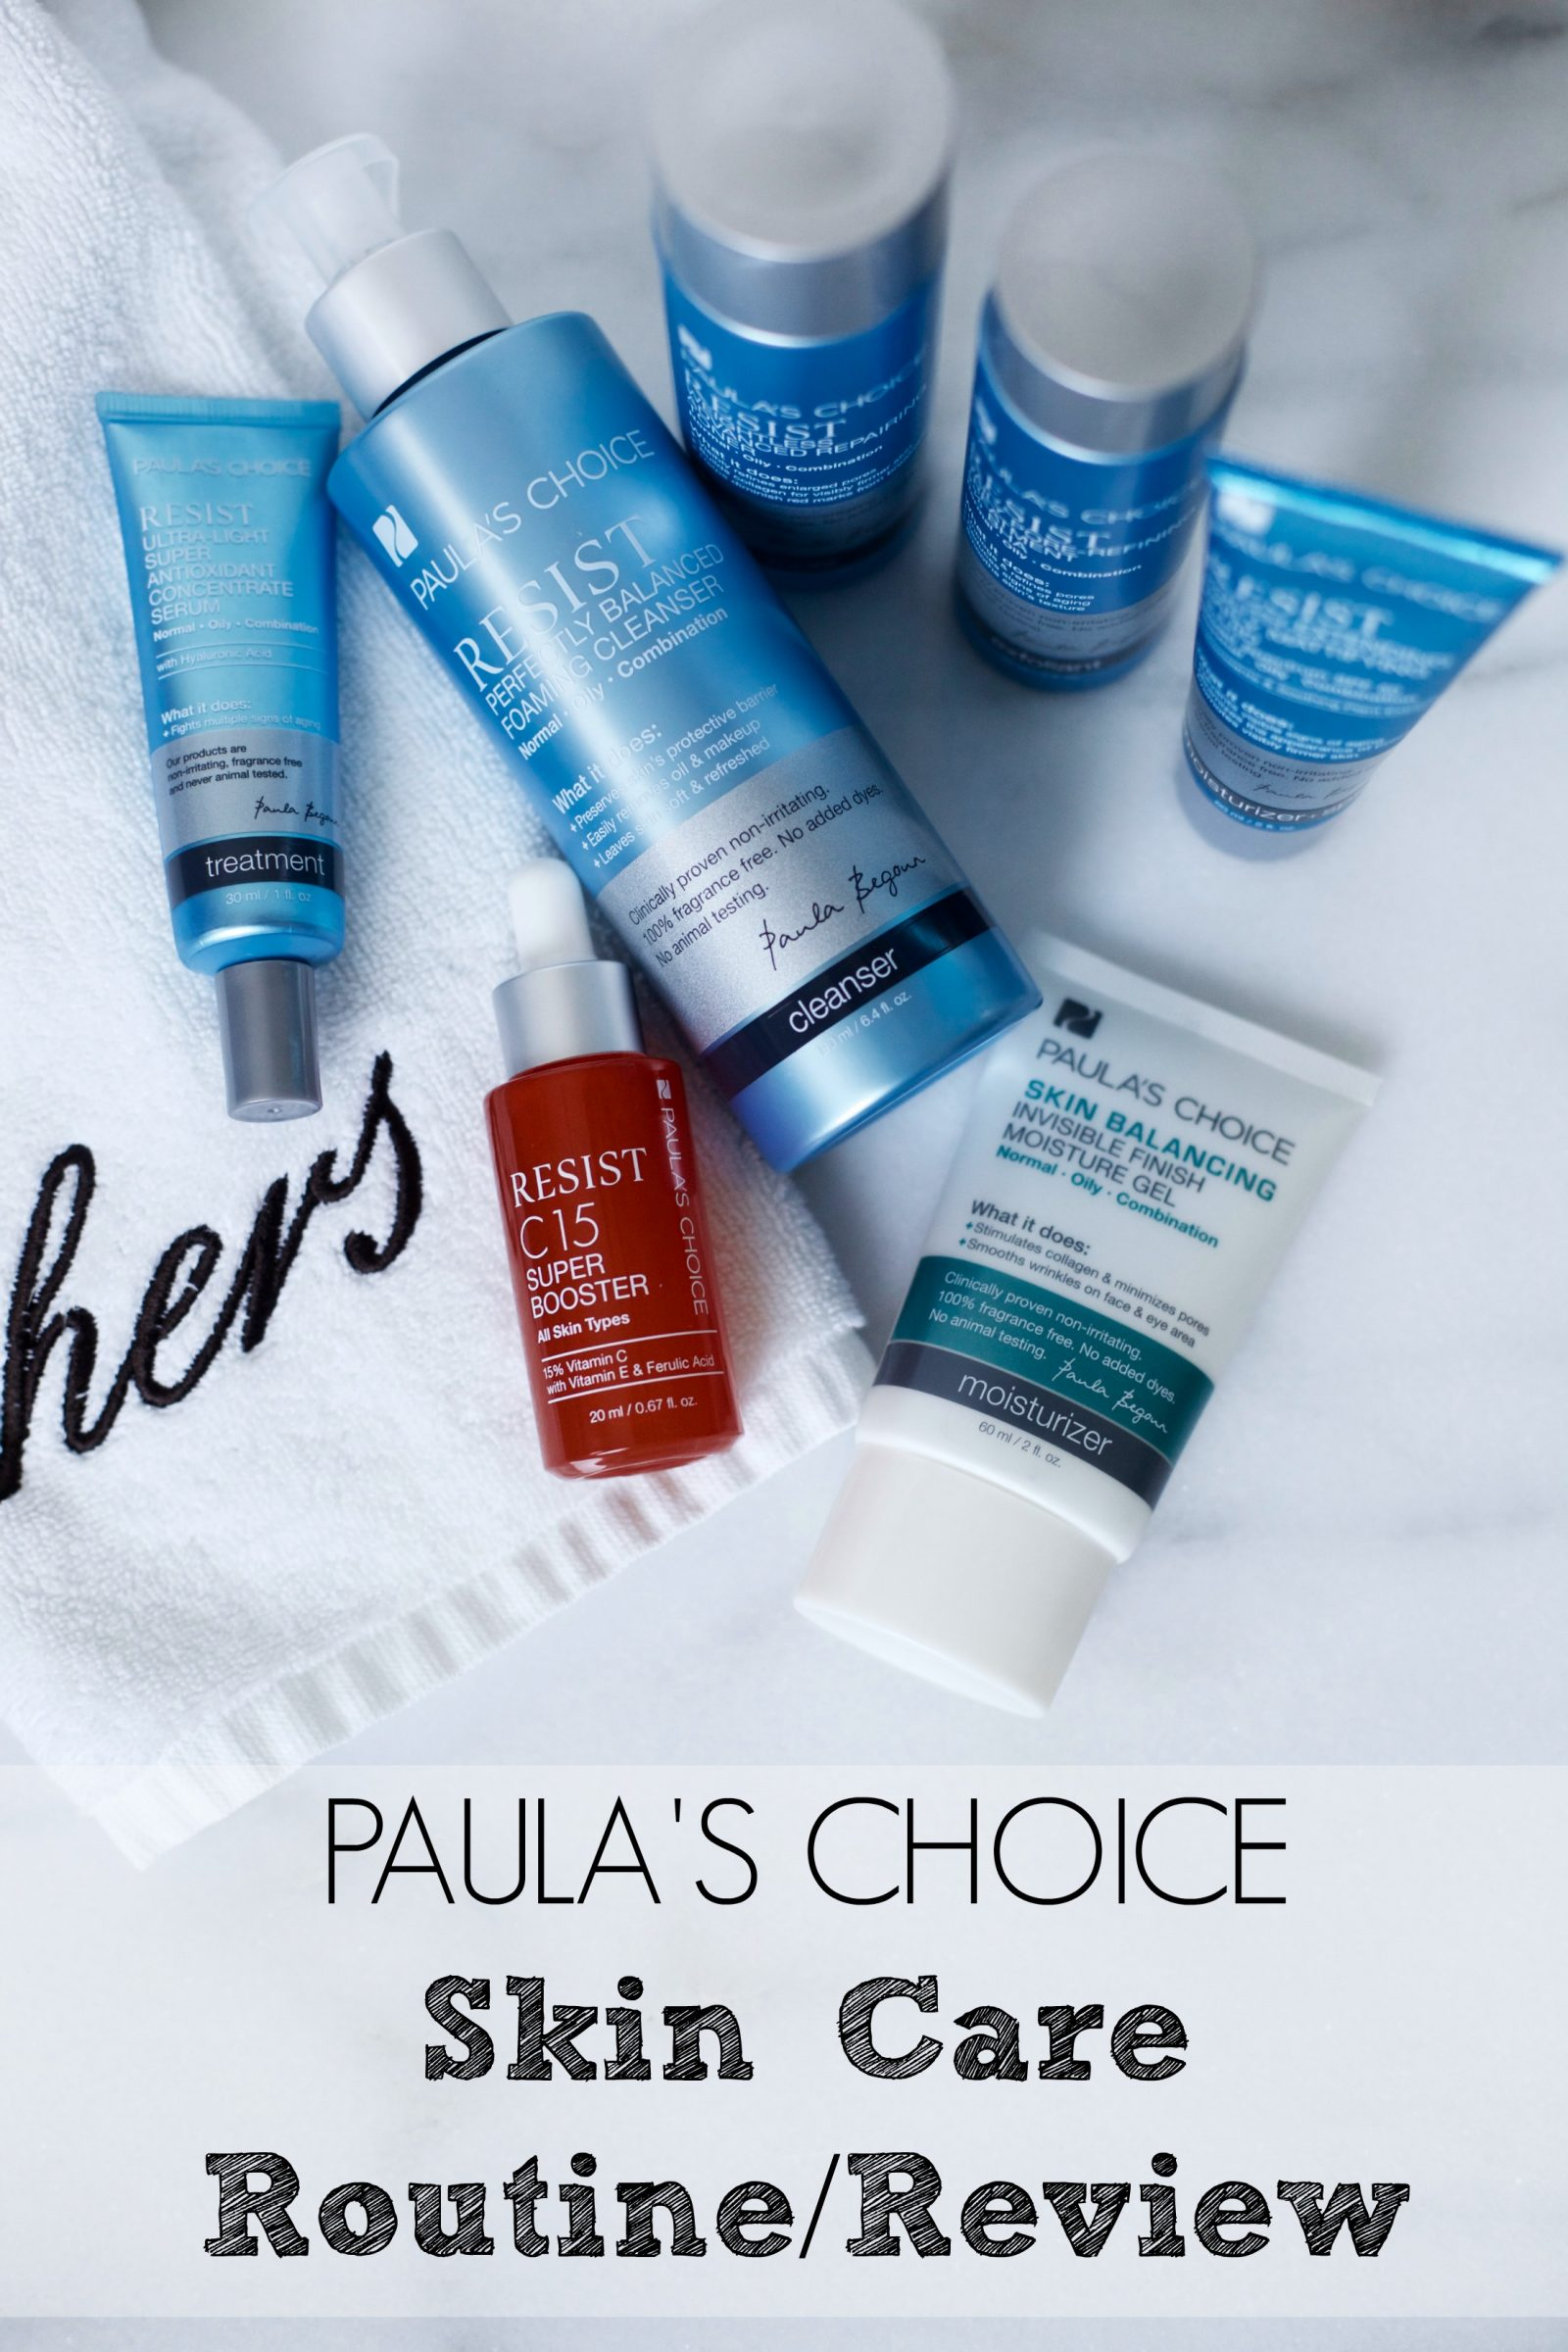 Looking for Paula's Choice Skincare Review? Houston beauty blogger Uptown with Elly Brown shares her thoughts and opinions on Paula's Choice!